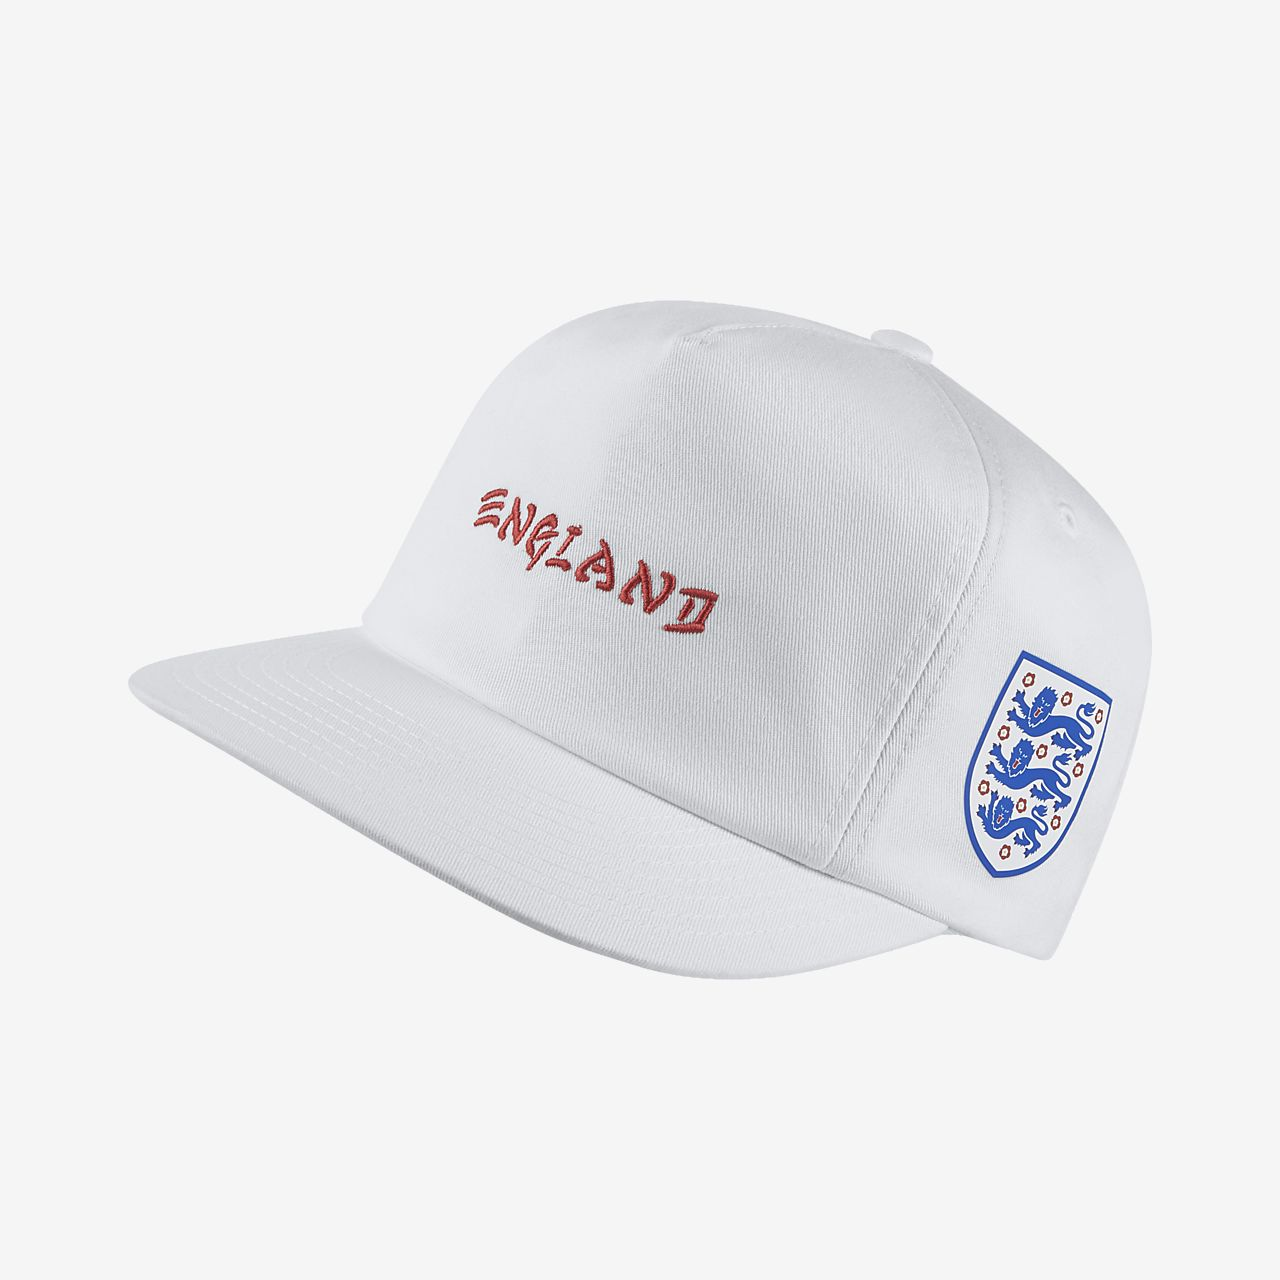 f5d3be768aa Hurley England National Team Men s Adjustable Hat. Nike.com